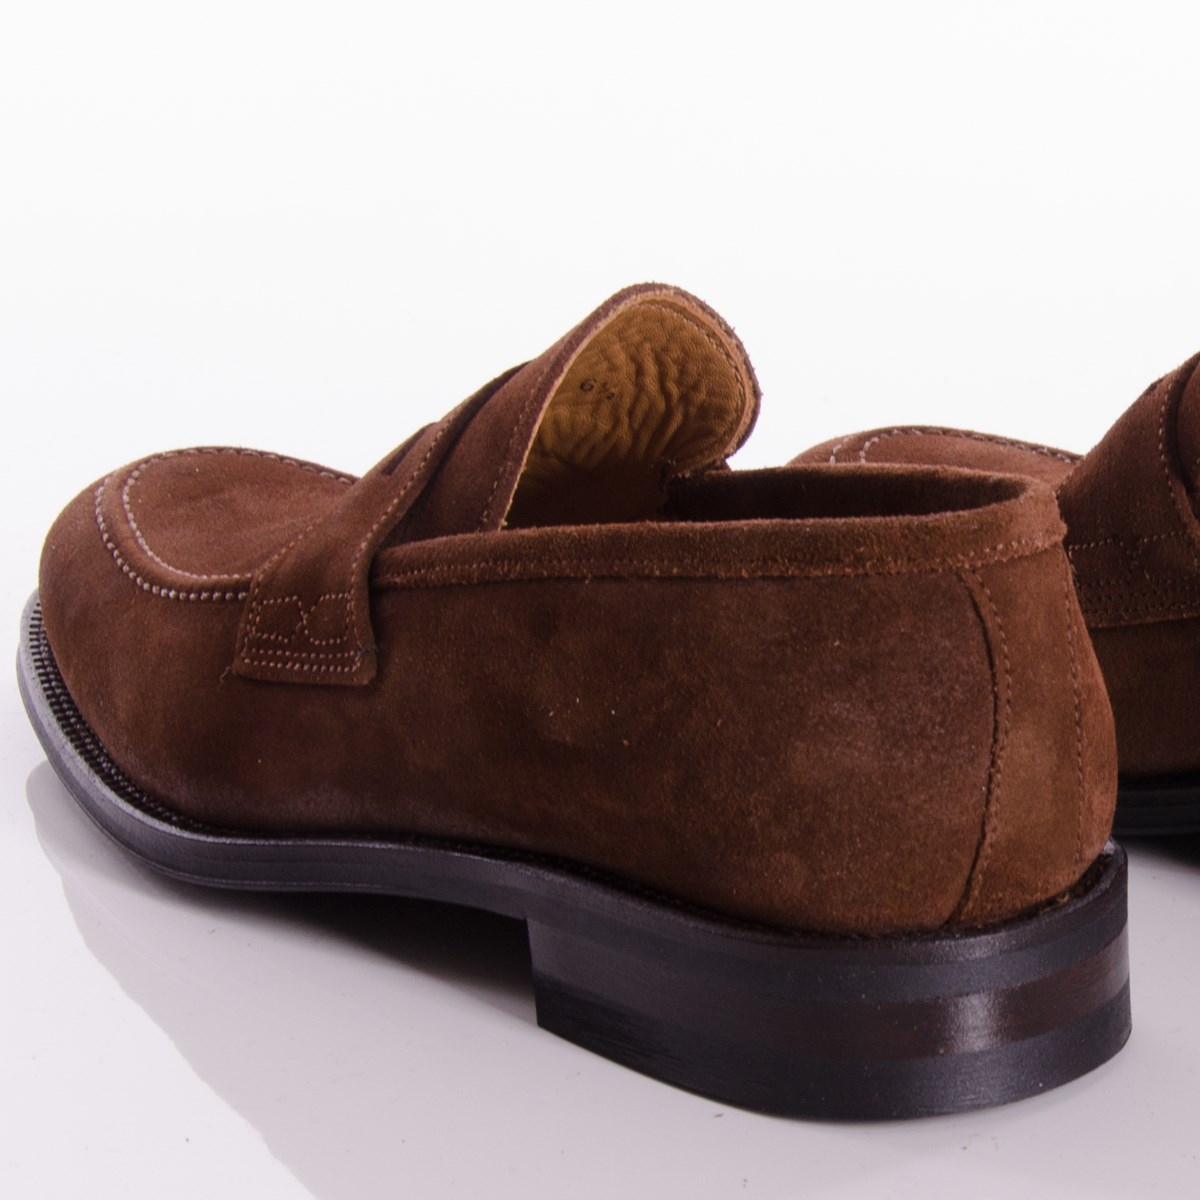 c7a58c61d12e00 john_white_1203040_stamford-5. Previous; Next. Stamford Brown Suede Loafers  By John White ...